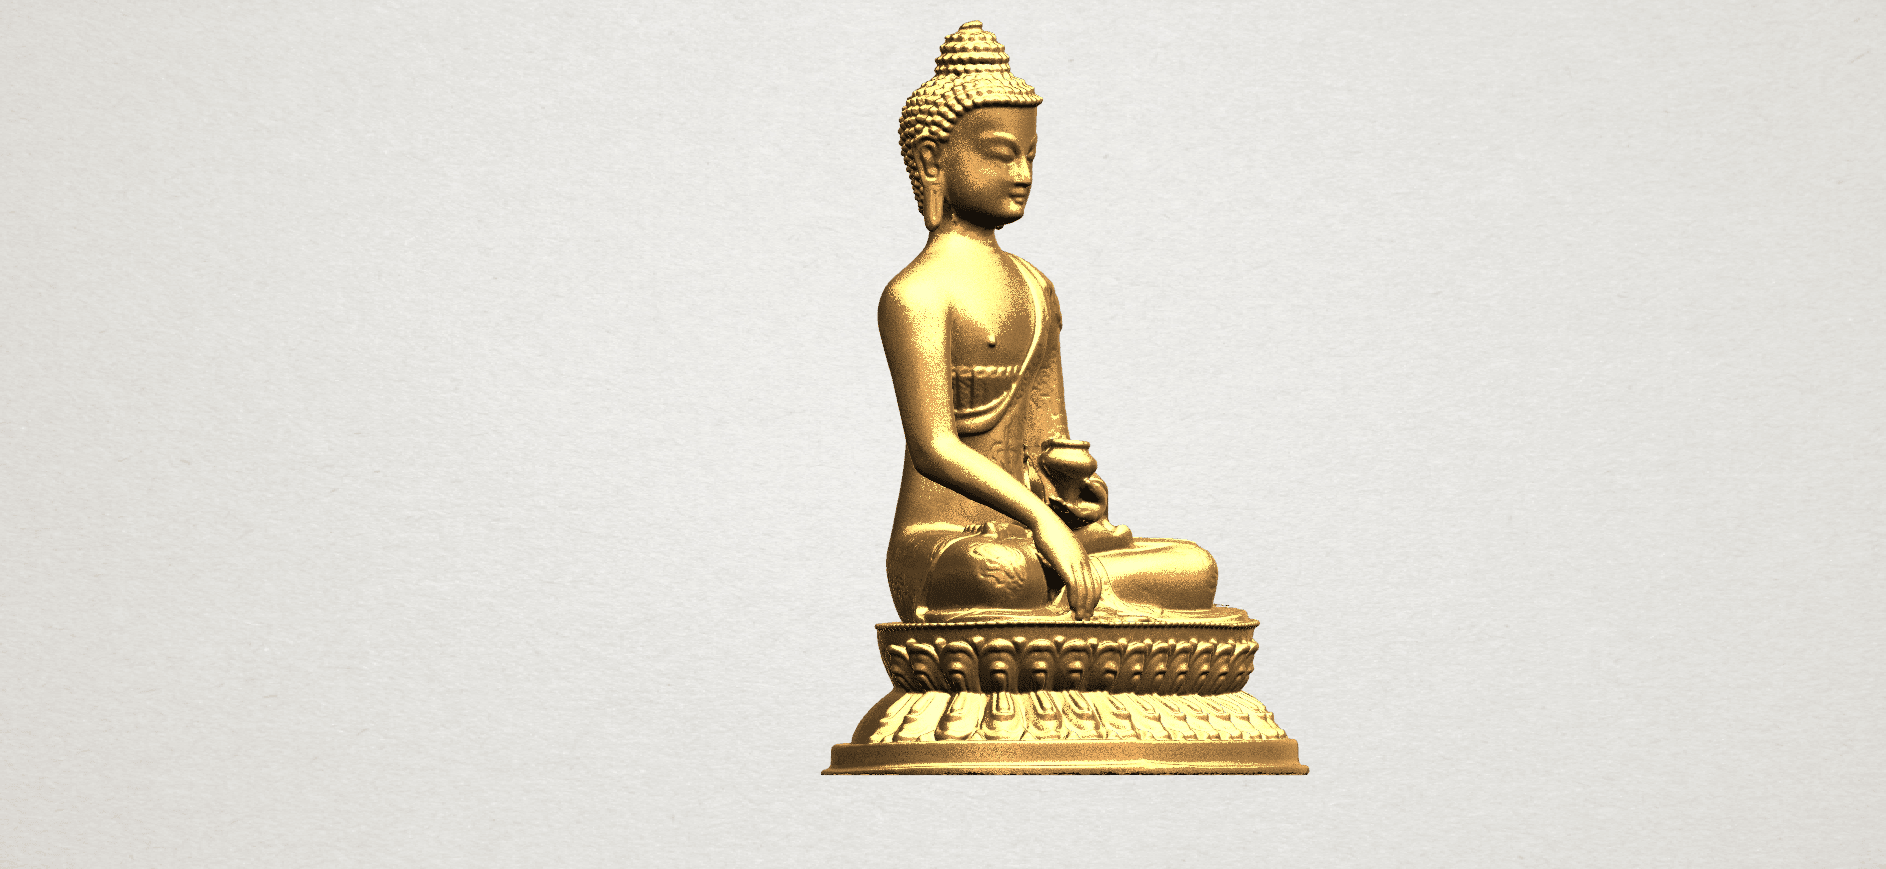 Thai Buddha (iii) A09.png Download free STL file Thai Buddha 03 • 3D printing object, GeorgesNikkei